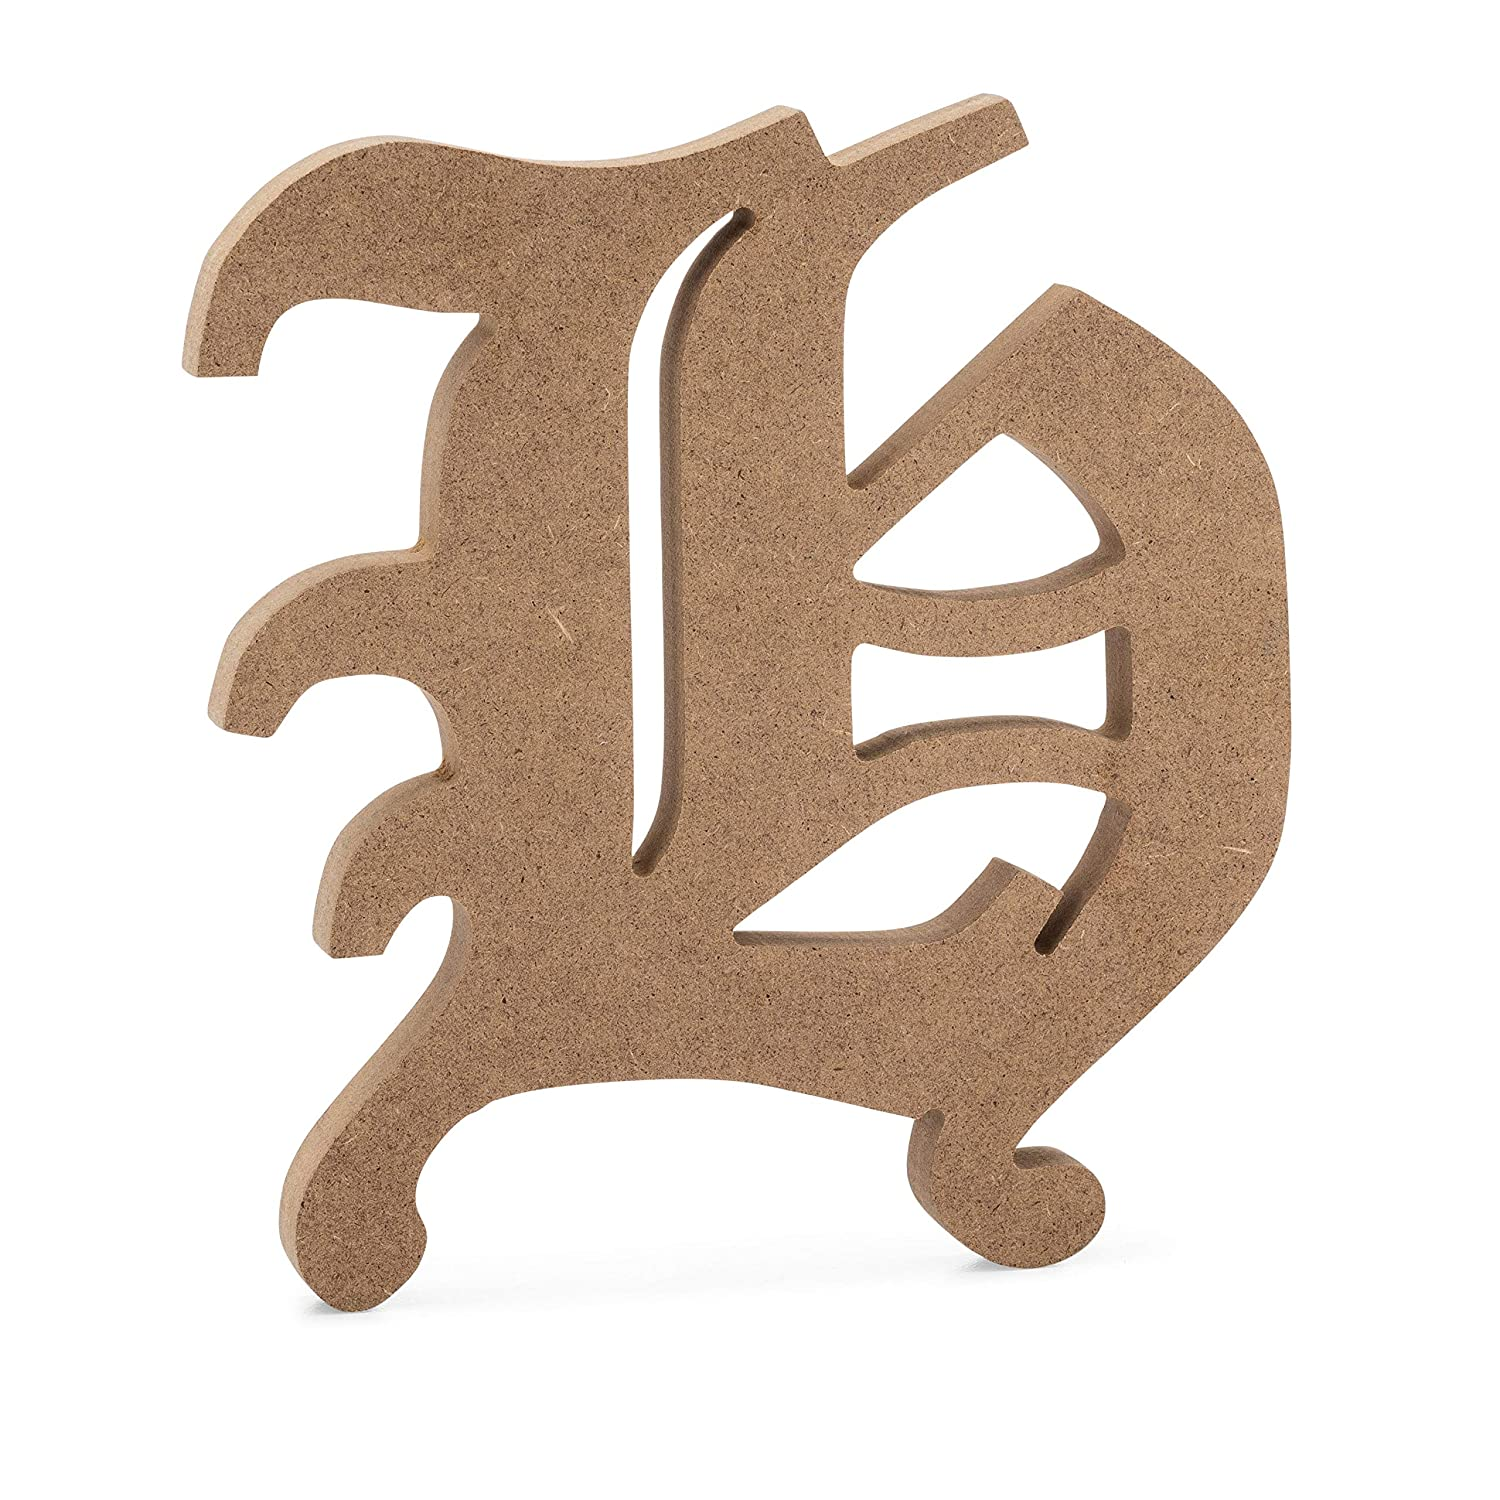 6 Old English Wooden Letter T 6 inch, T JoePauls Crafts Premium MDF Wood Wall Letters